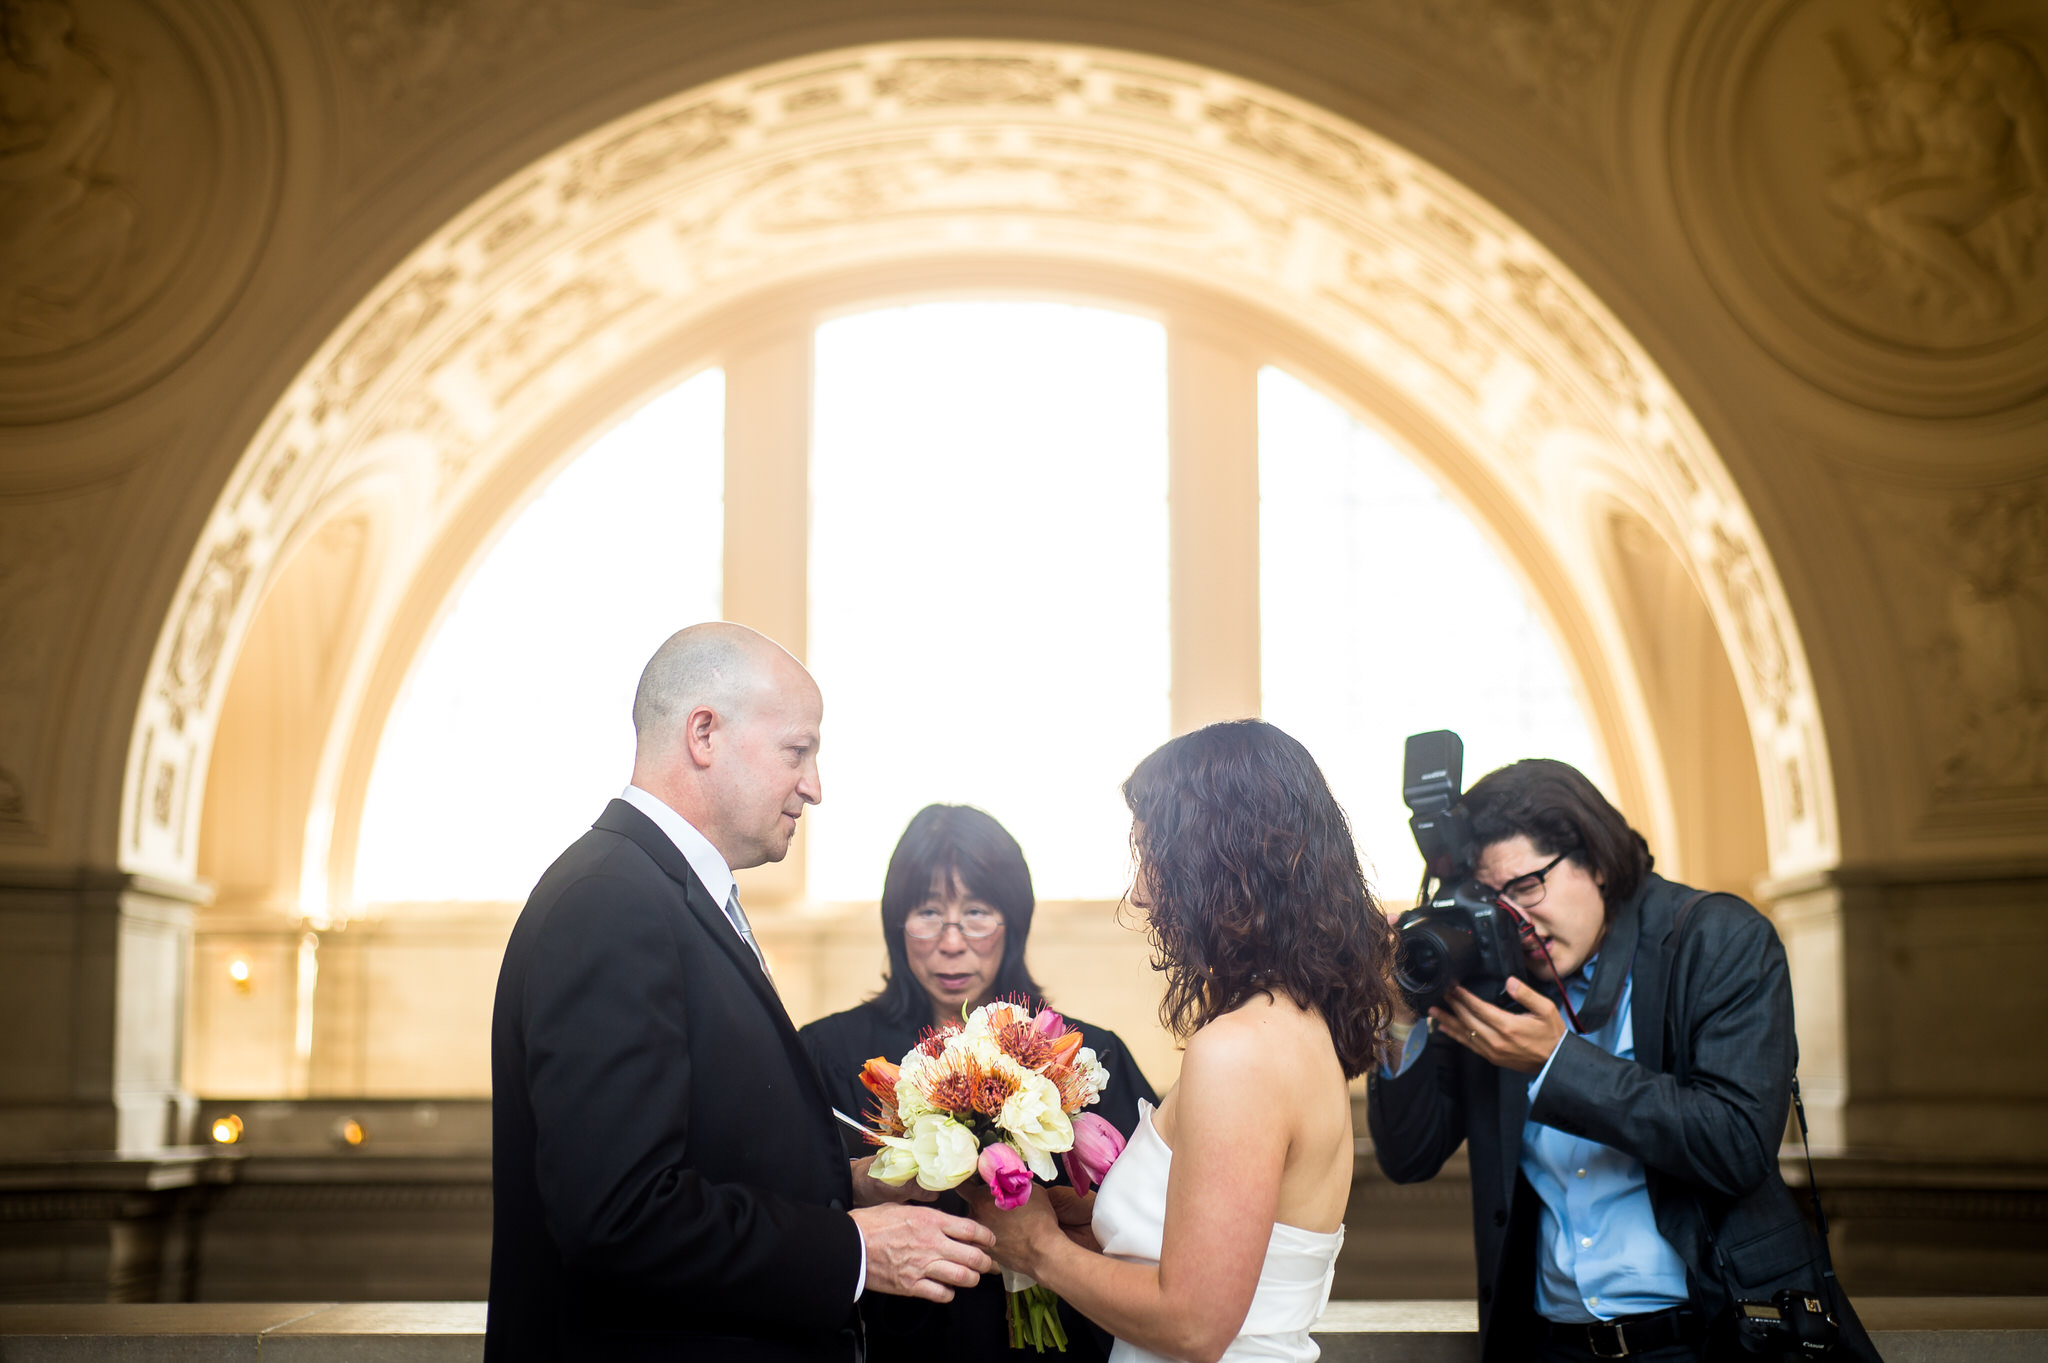 Resi and Troy's wedding at City Hall in San Francisco, CA.